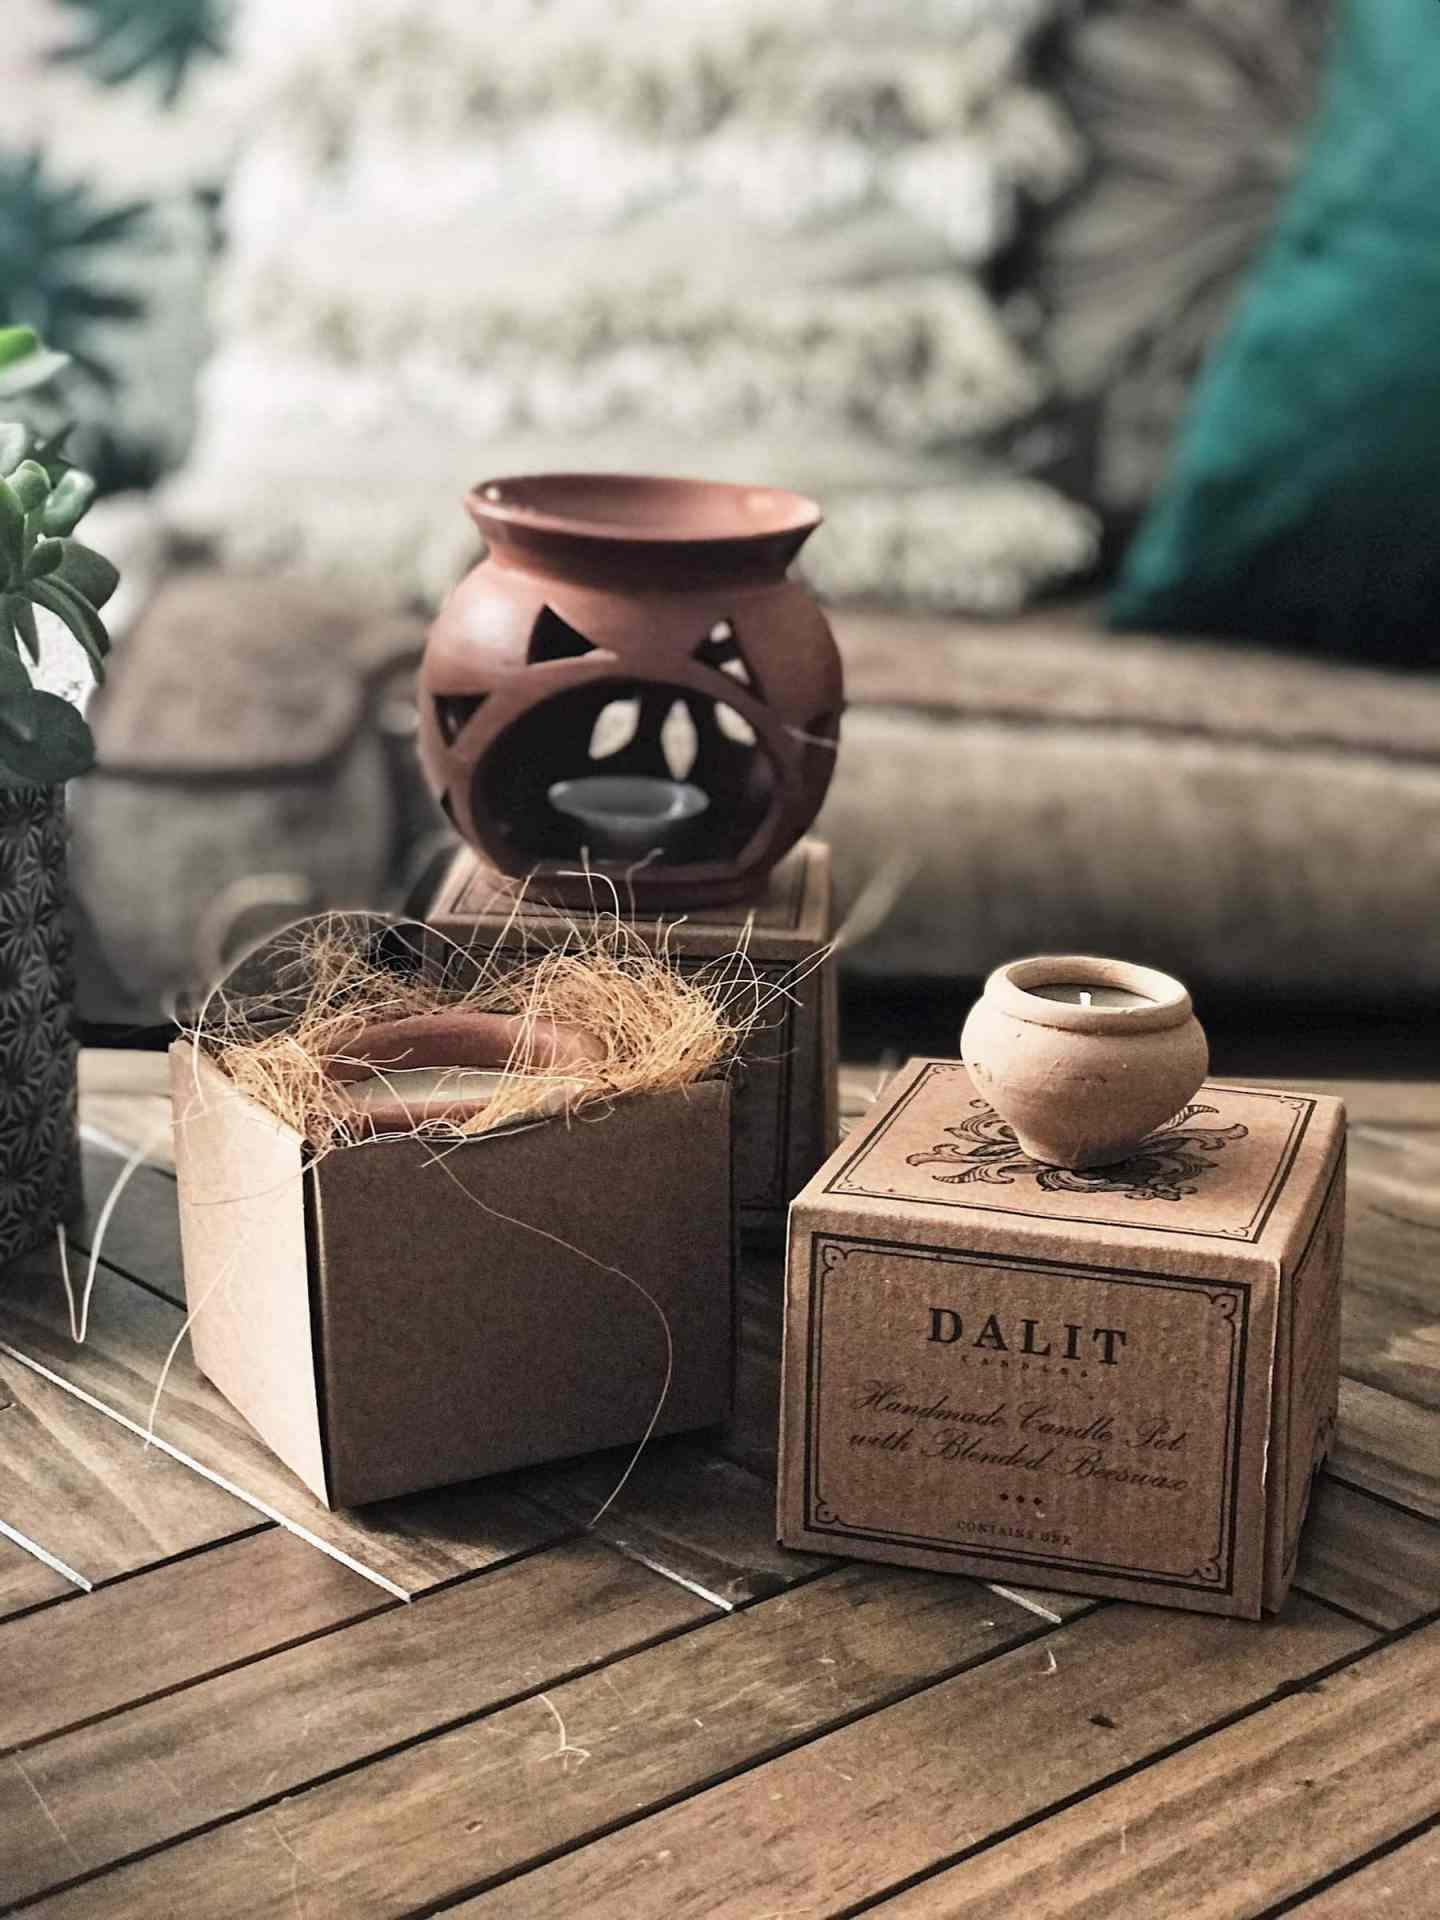 Beautiful rustic packaging